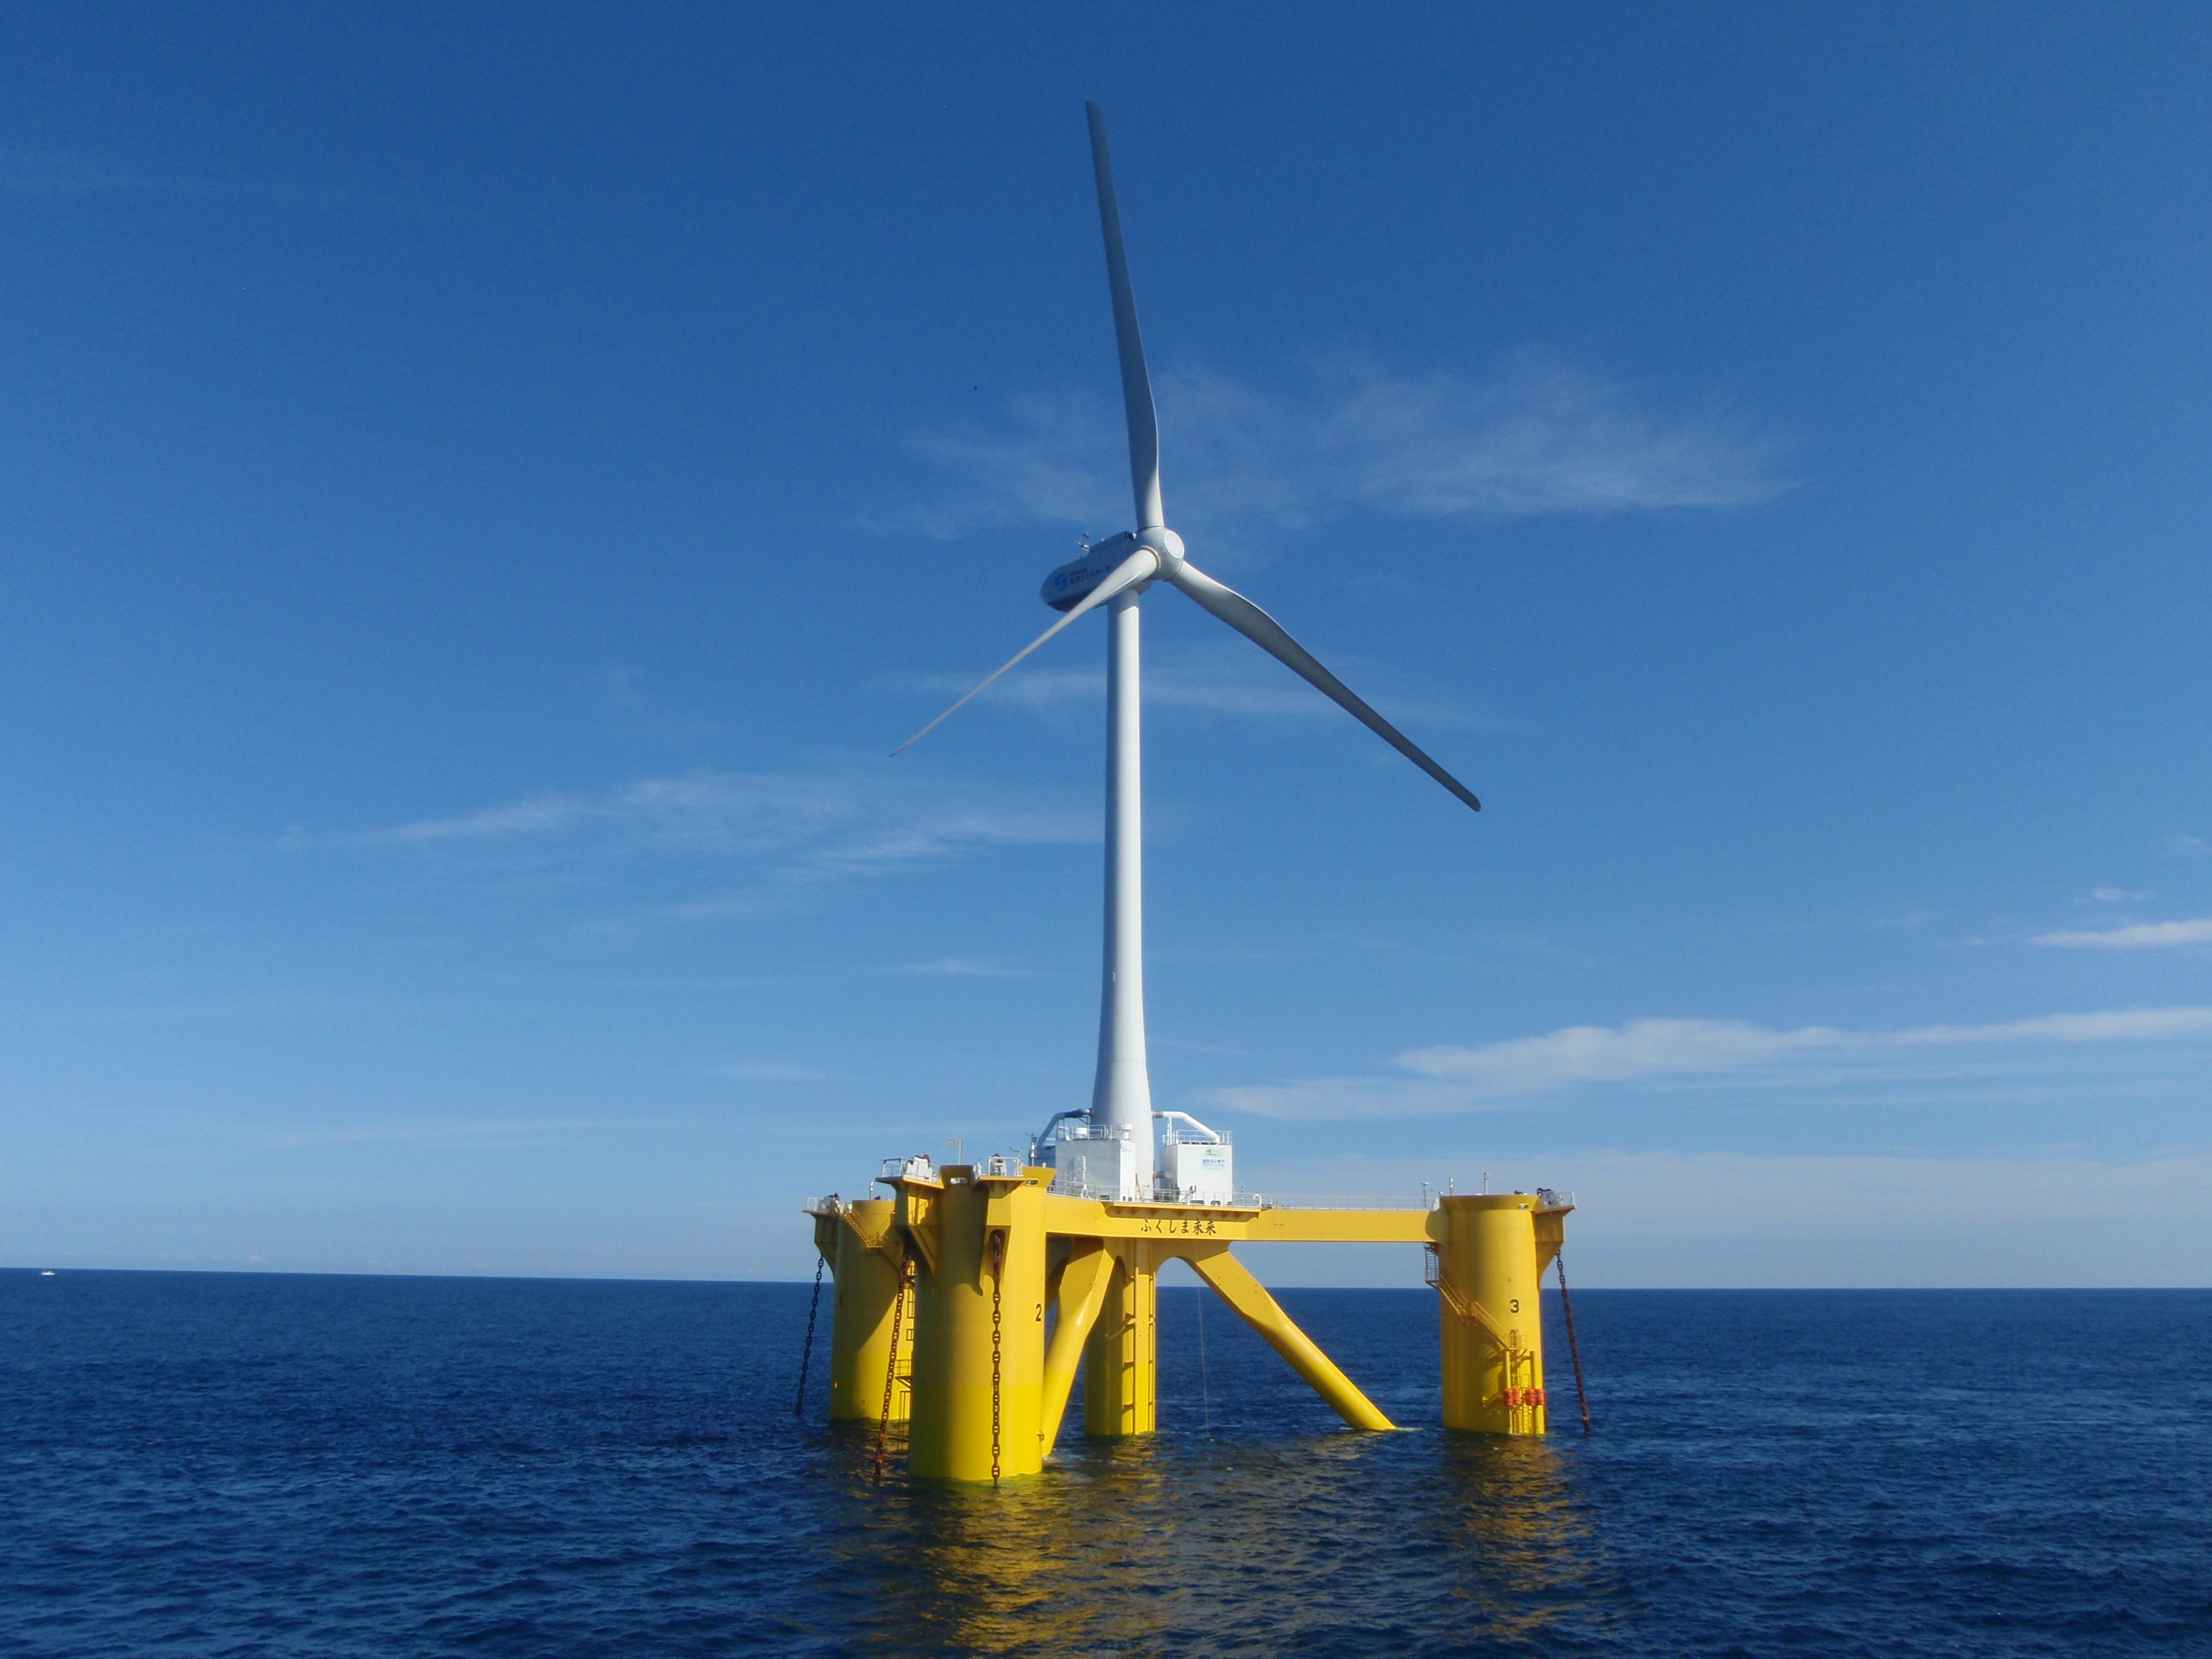 Japan may become an important market for floating wind turbines. There ...